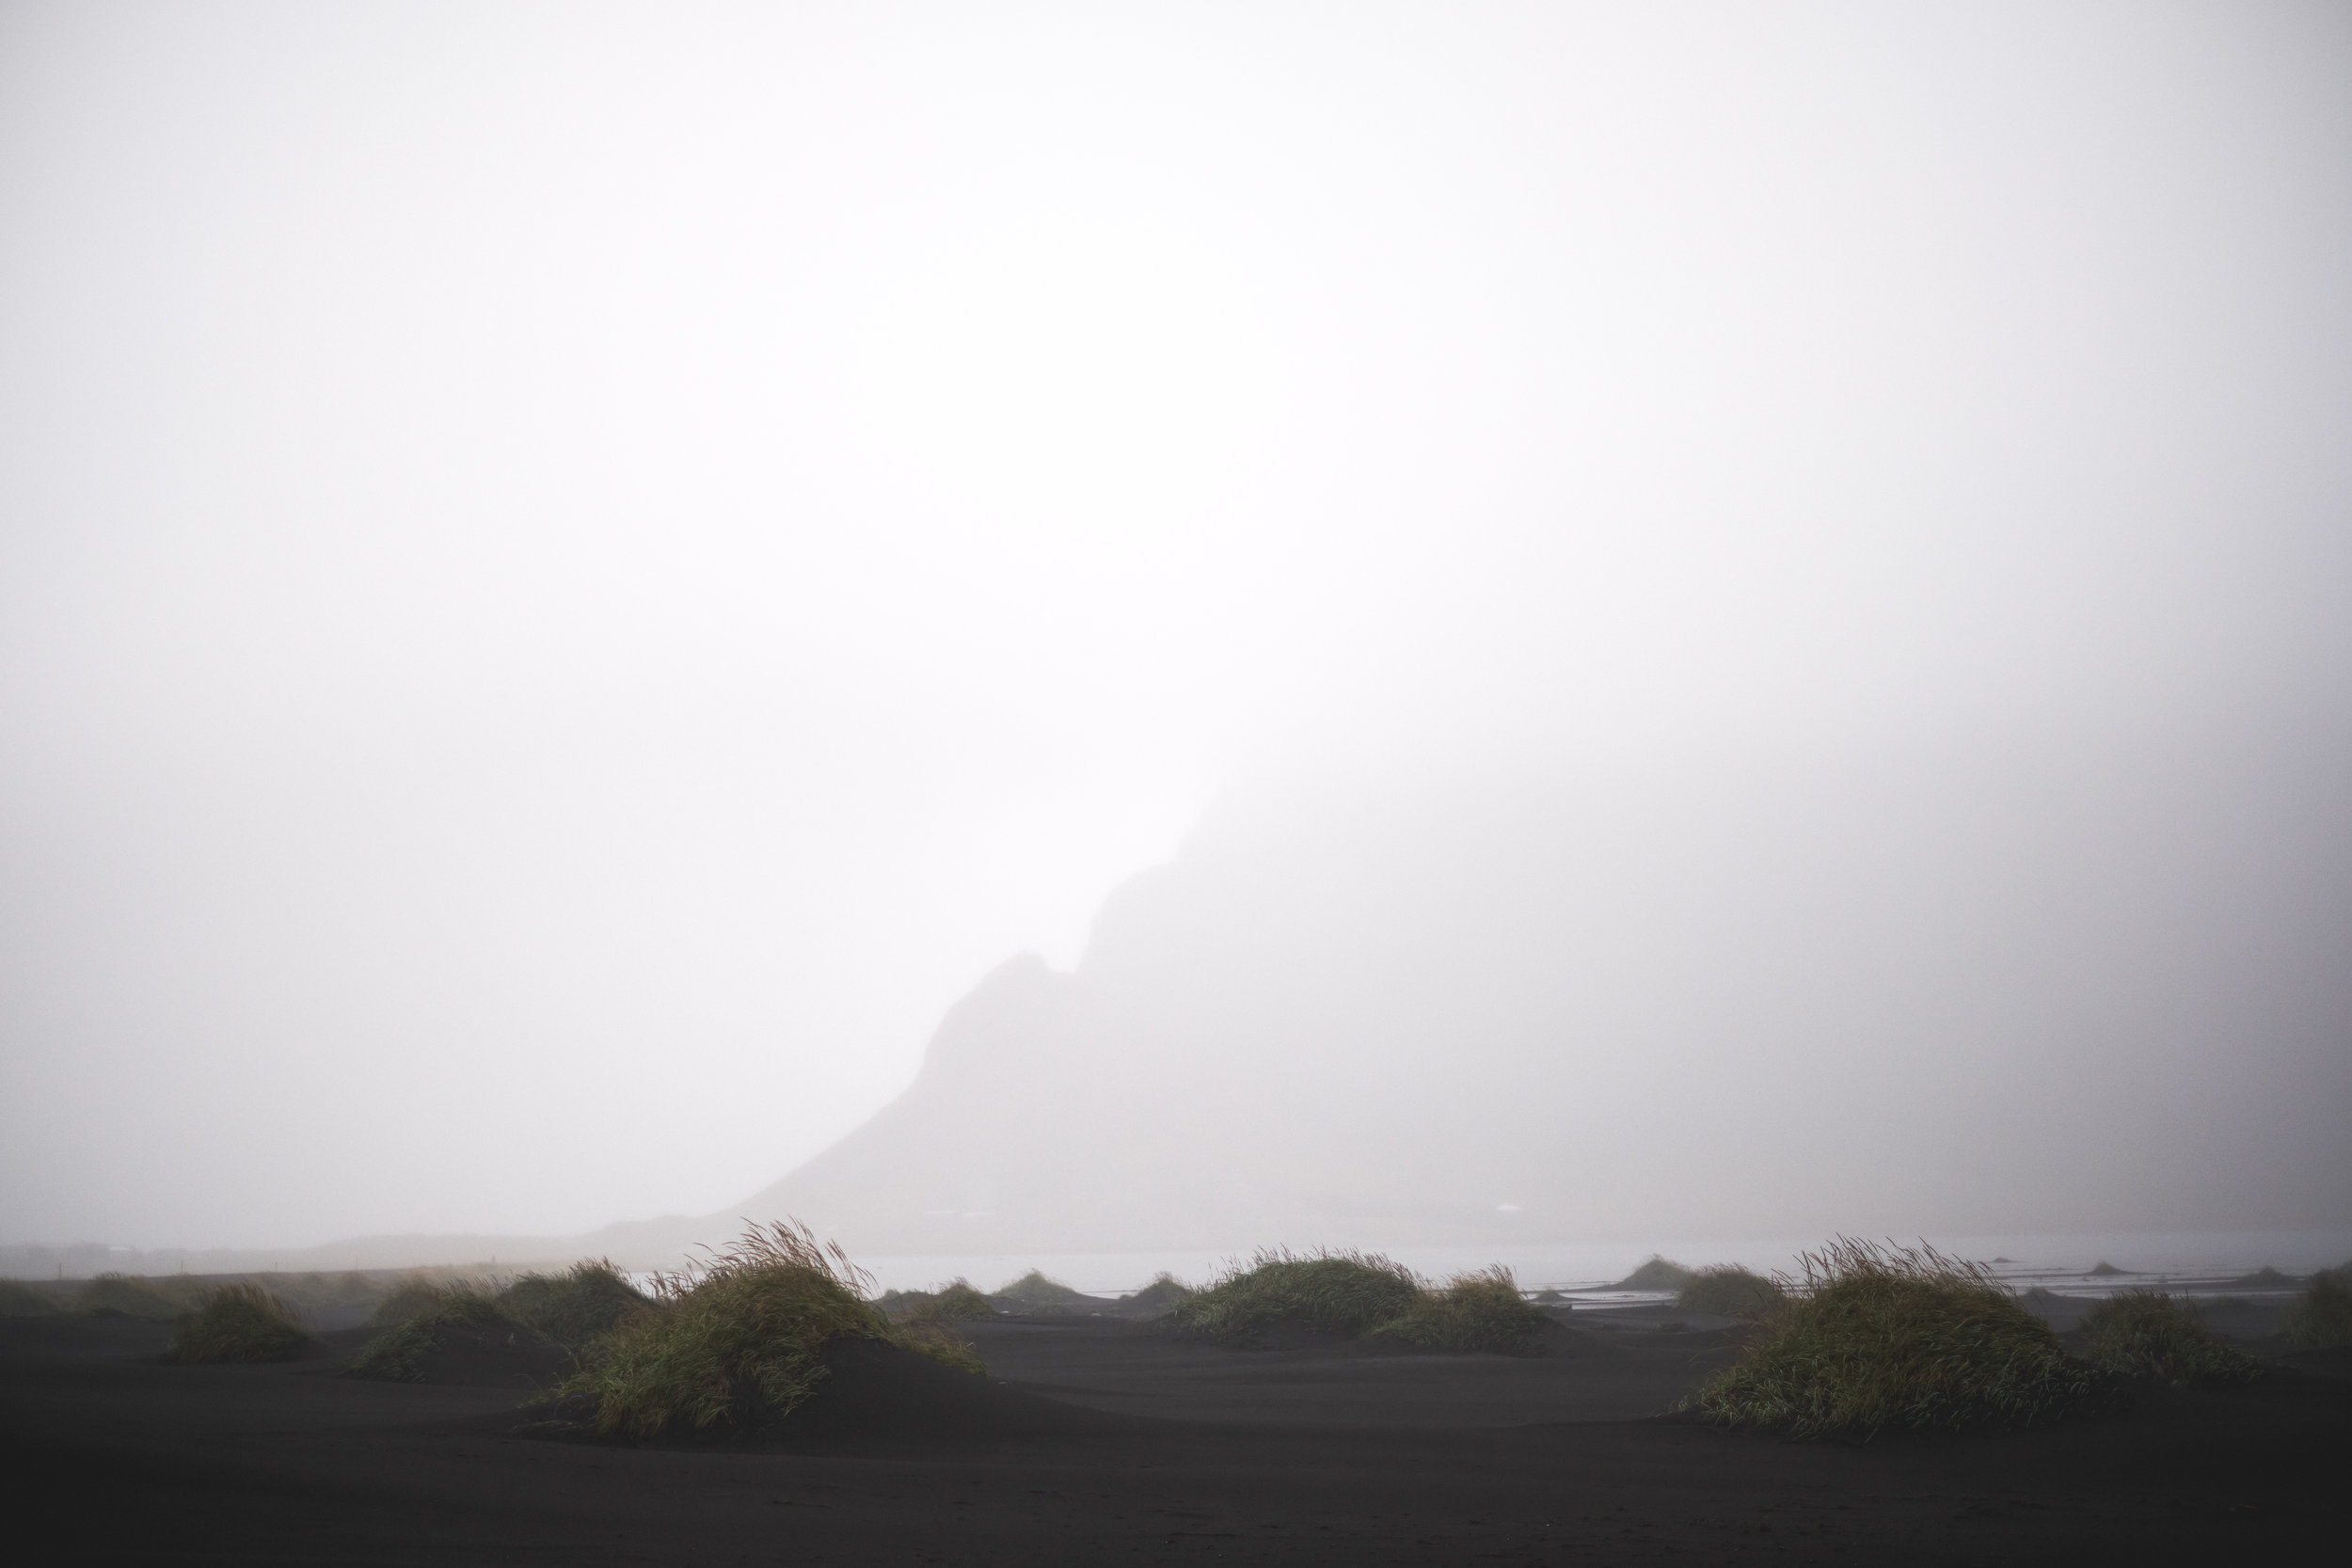 Vestrahorn on the Stokksnes peninsula remained hidden in the fog during our visit.